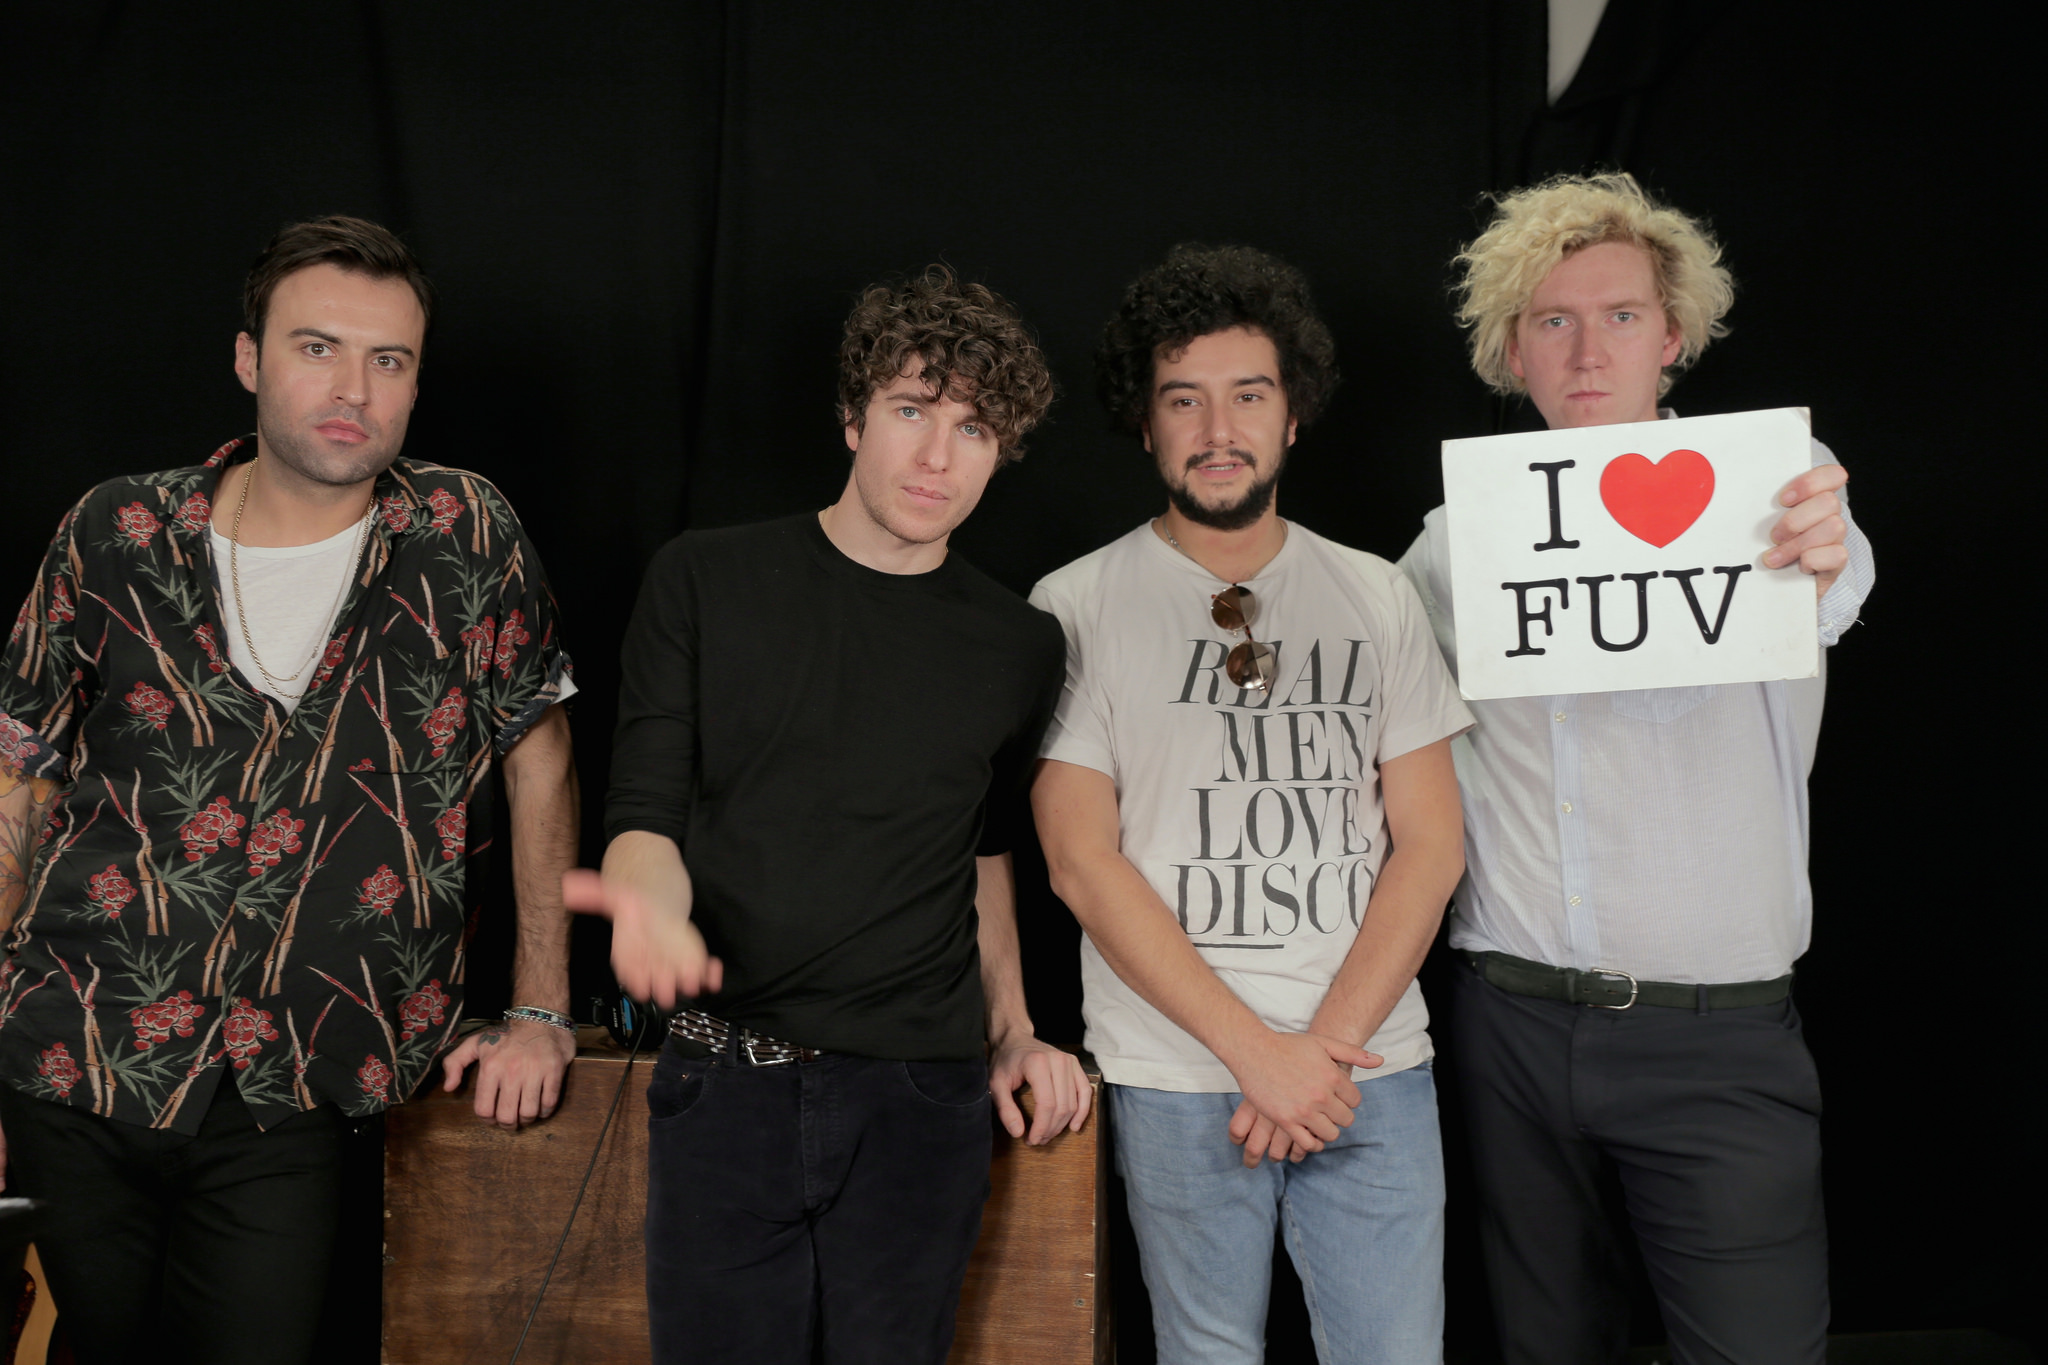 Hear an FUV Live session with The Kooks tonight at 9.